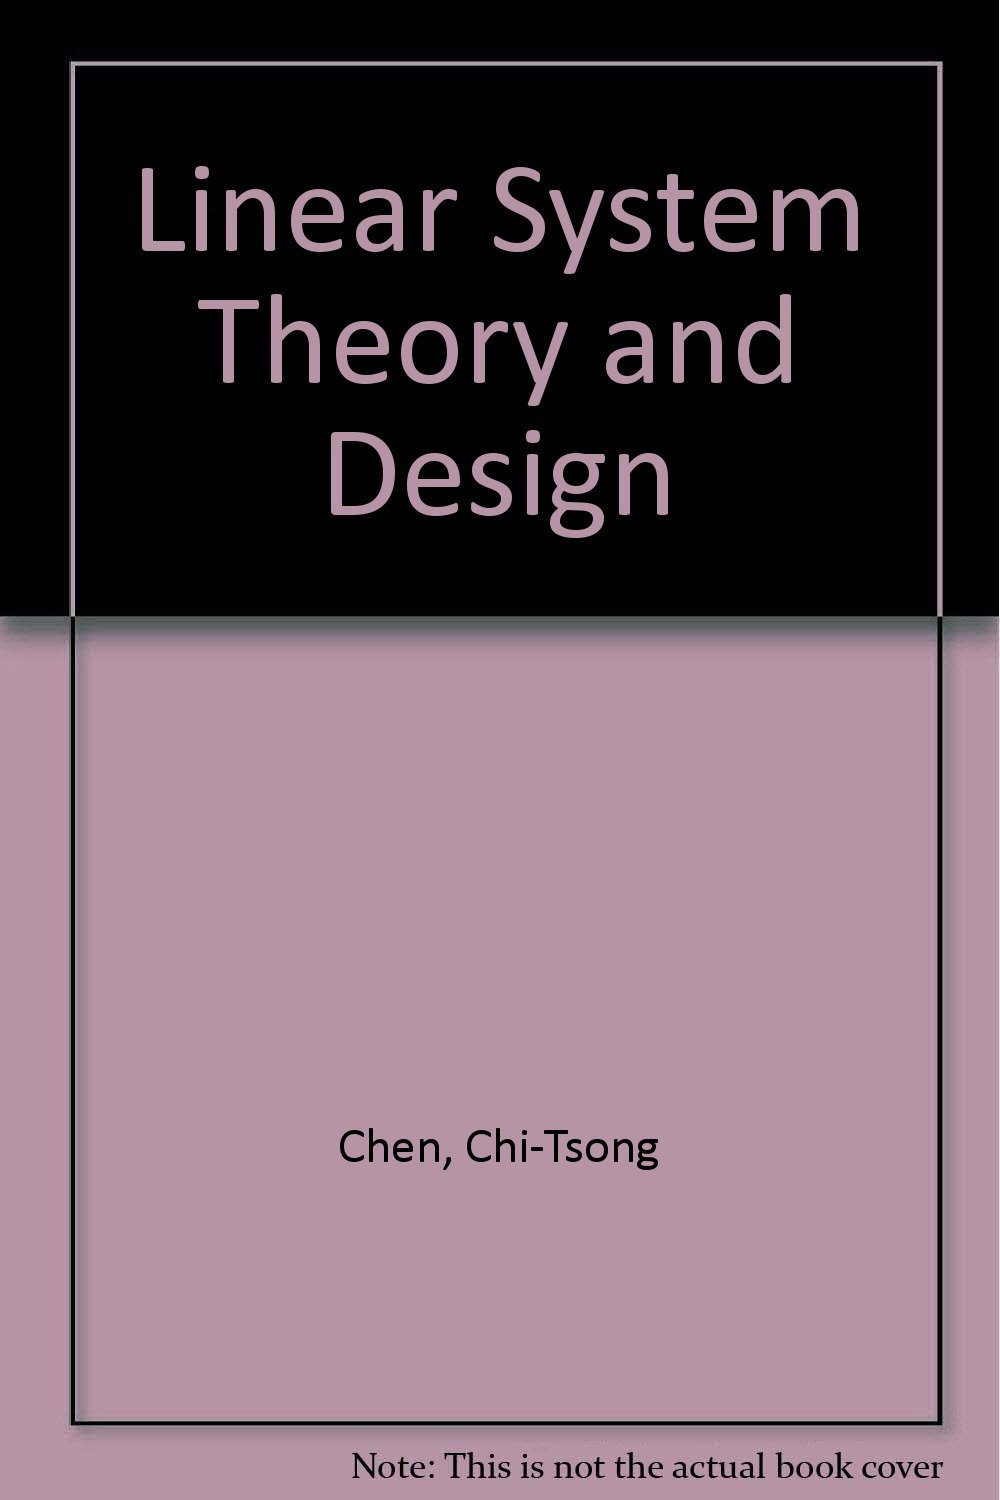 Linear System Theory and Design: Chi-Tsong Chen: 9784833701914: Amazon.com:  Books